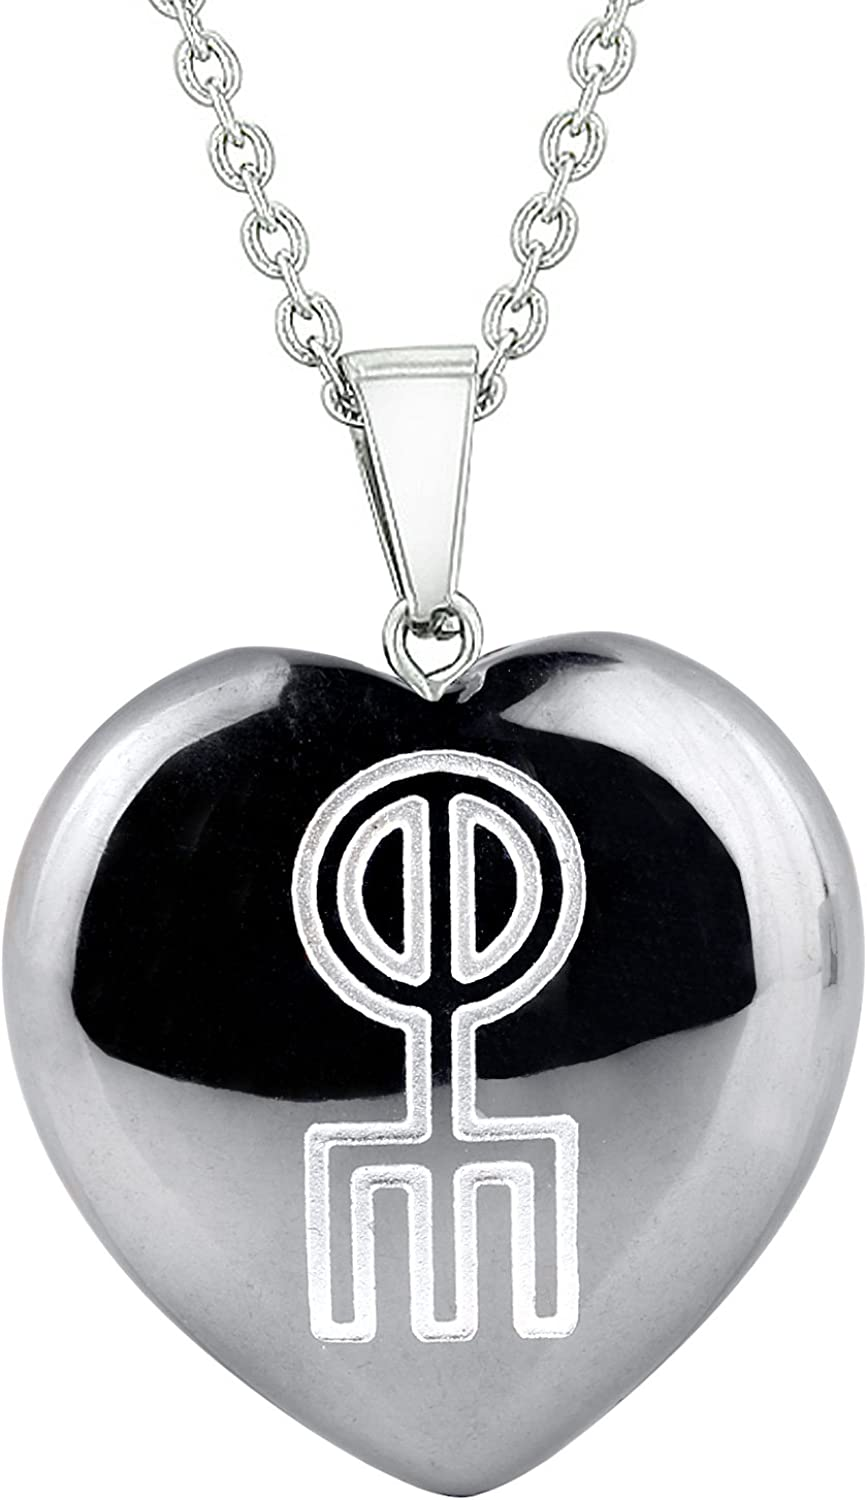 Amulet Norse Rune Love Spell Magic Powers Protect Energy Black Agate Puffy Heart Pendant 22 Inch Necklace